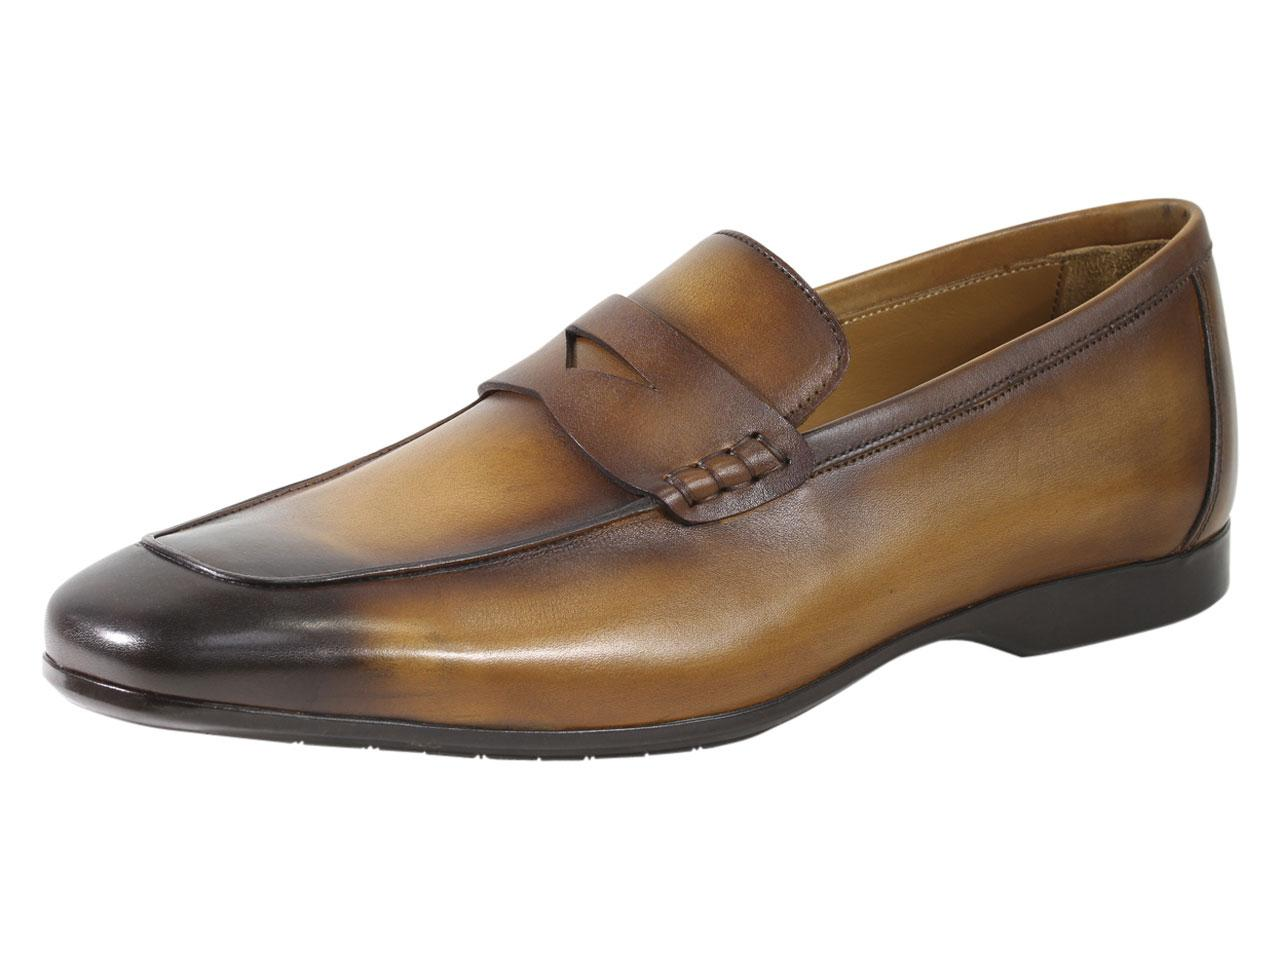 4cbeee31c37 Bruno Magli Men s Margot Penny Loafers Shoes by Bruno Magli